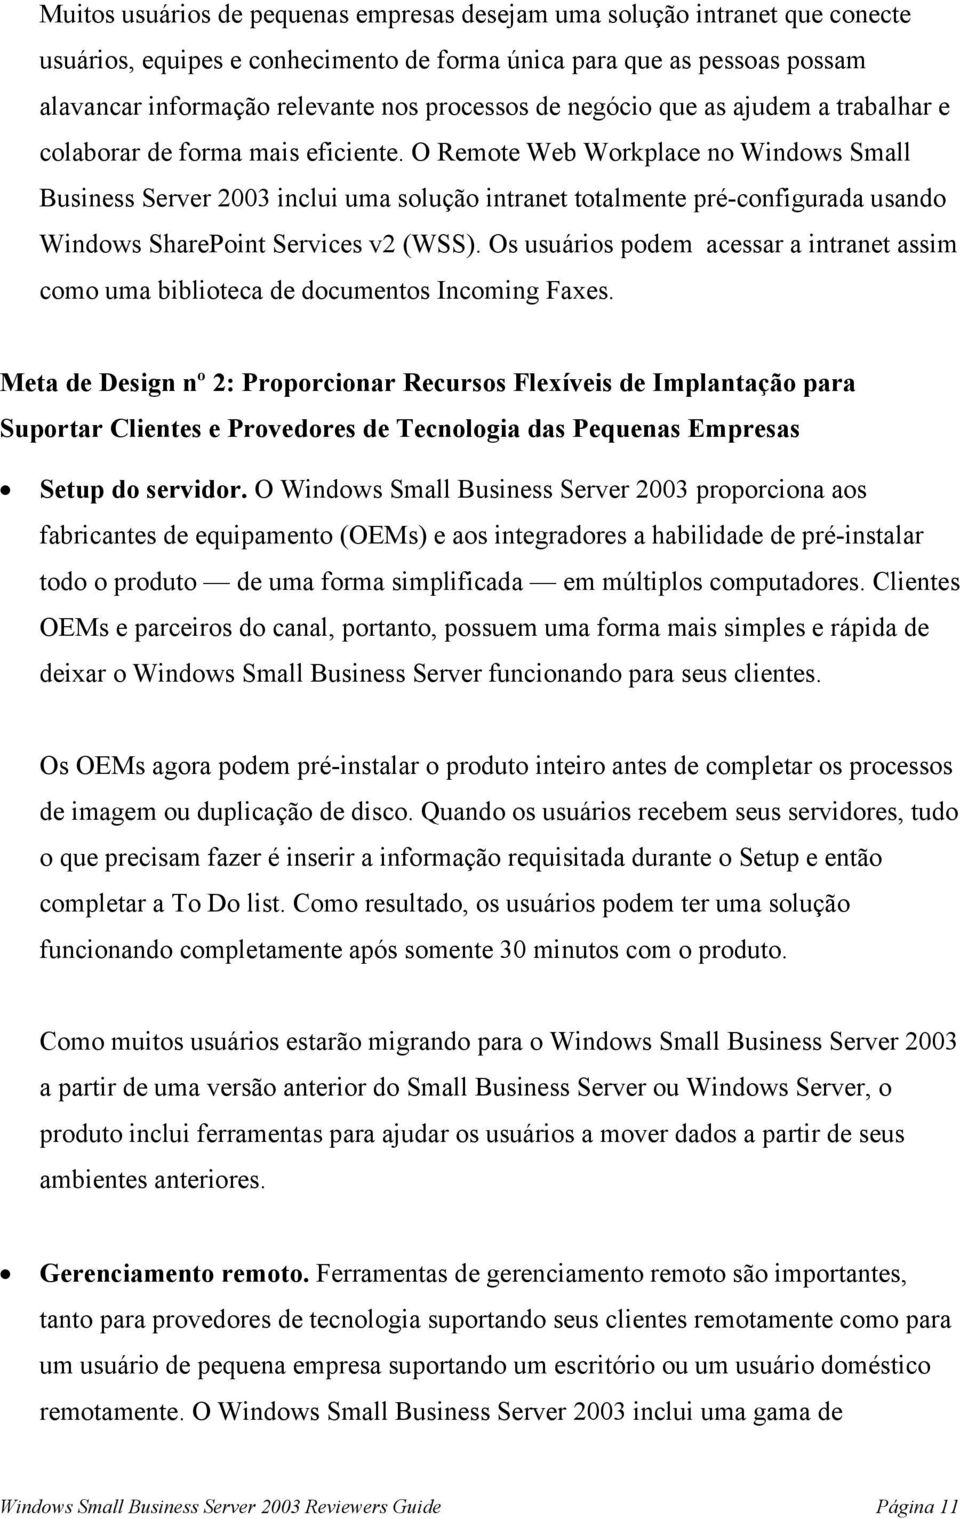 O Remote Web Workplace no Windows Small Business Server 2003 inclui uma solução intranet totalmente pré-configurada usando Windows SharePoint Services v2 (WSS).